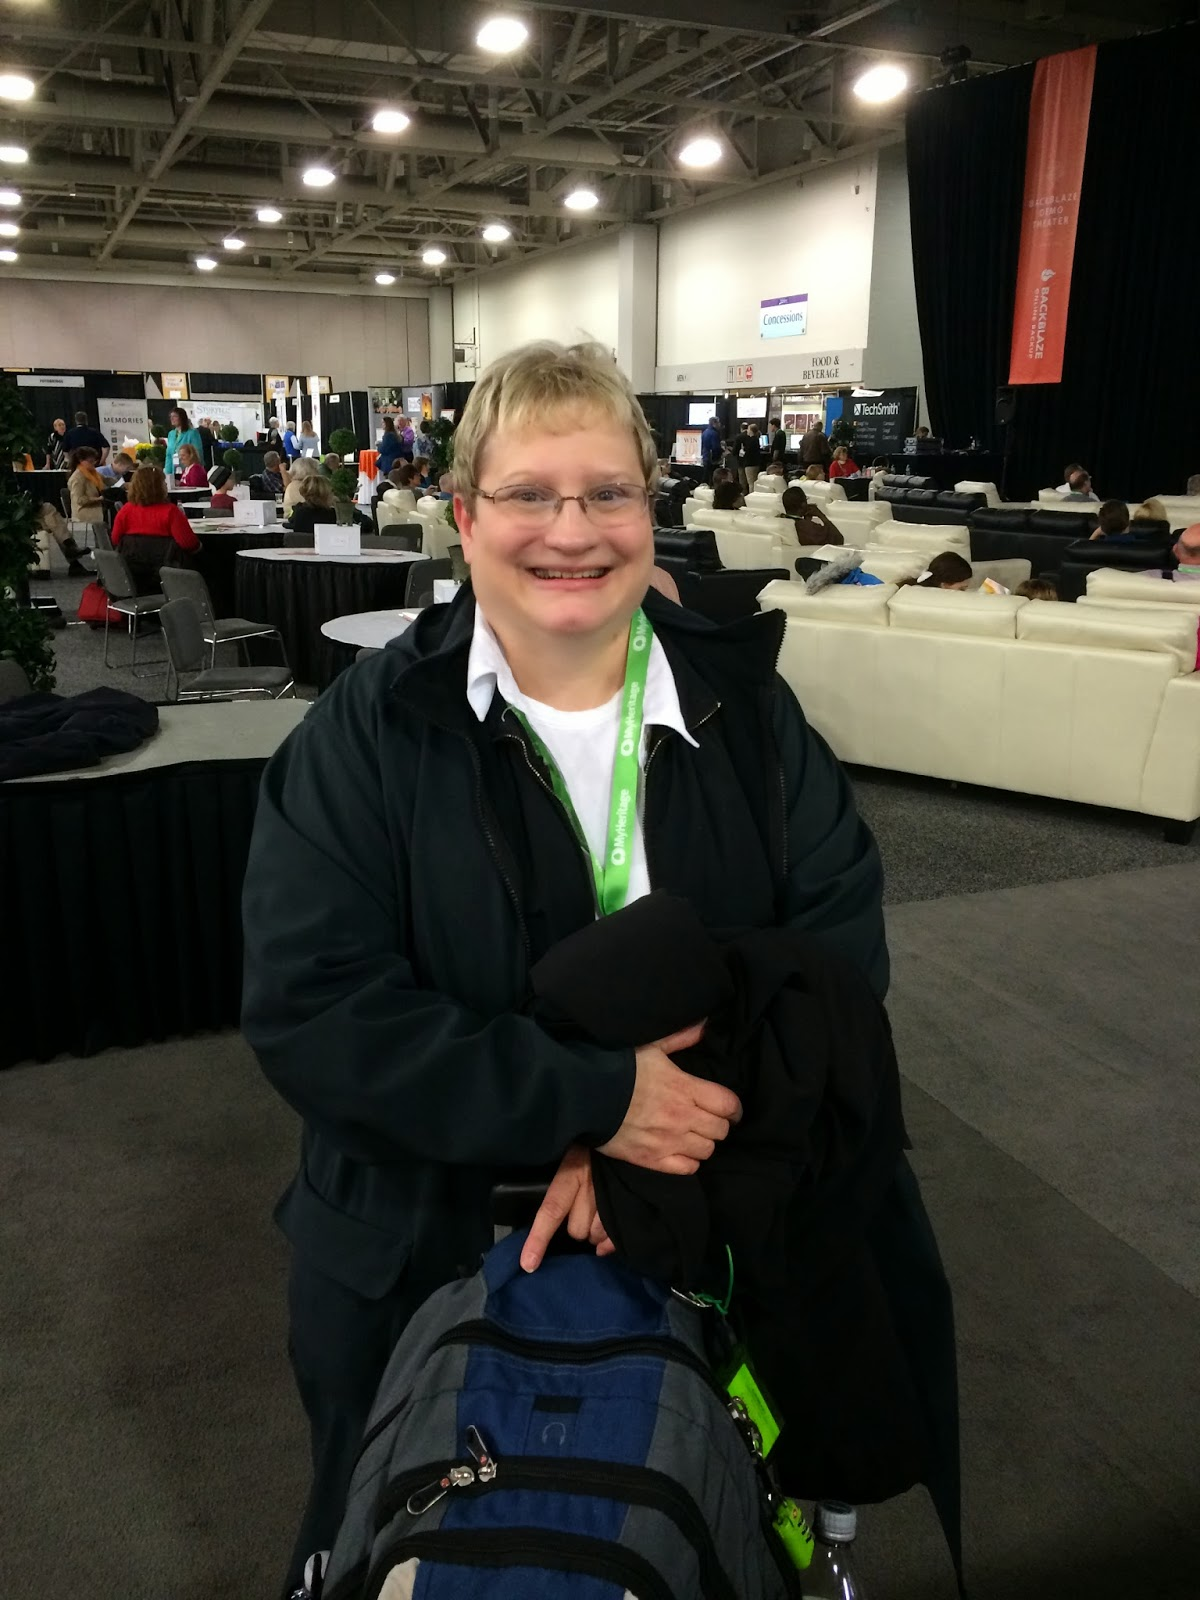 Lisa Alzo made it to RootsTech 2014!